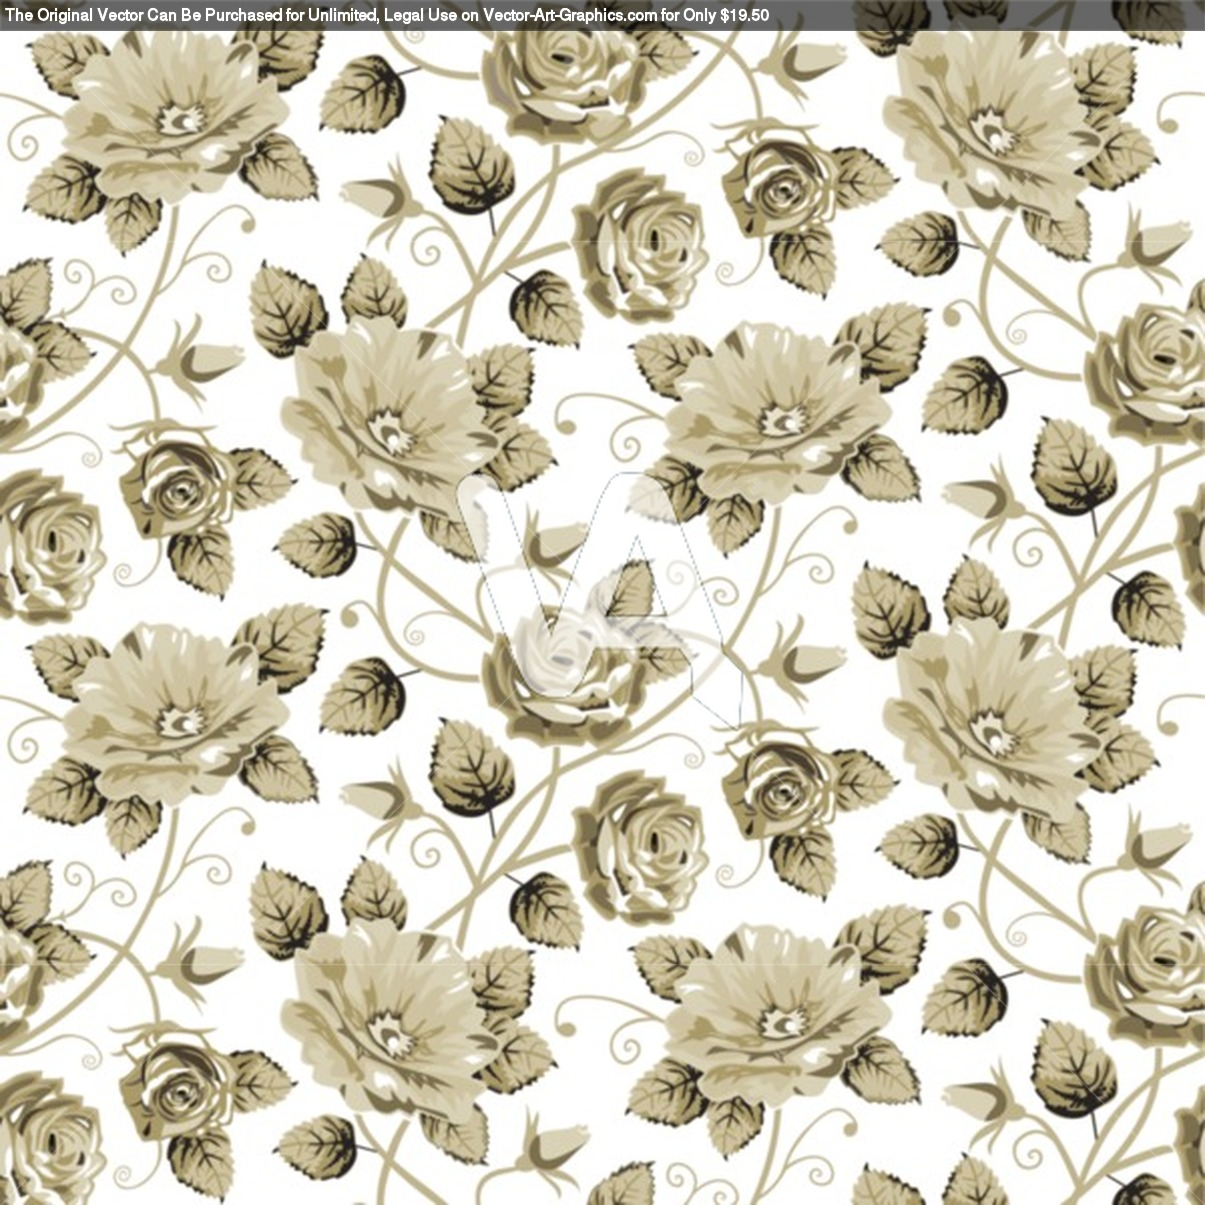 http://1.bp.blogspot.com/-i1cHSczXlqc/T9hmeMOOdEI/AAAAAAAAGqU/qFtAKU1IKhI/s1600/Retro-Vector-Floral-Pattern-Background-Or-Wallpaper-Brown-Roses-Repeating-Seamless-Pattern-Isolated-On-White-f4beda.jpg